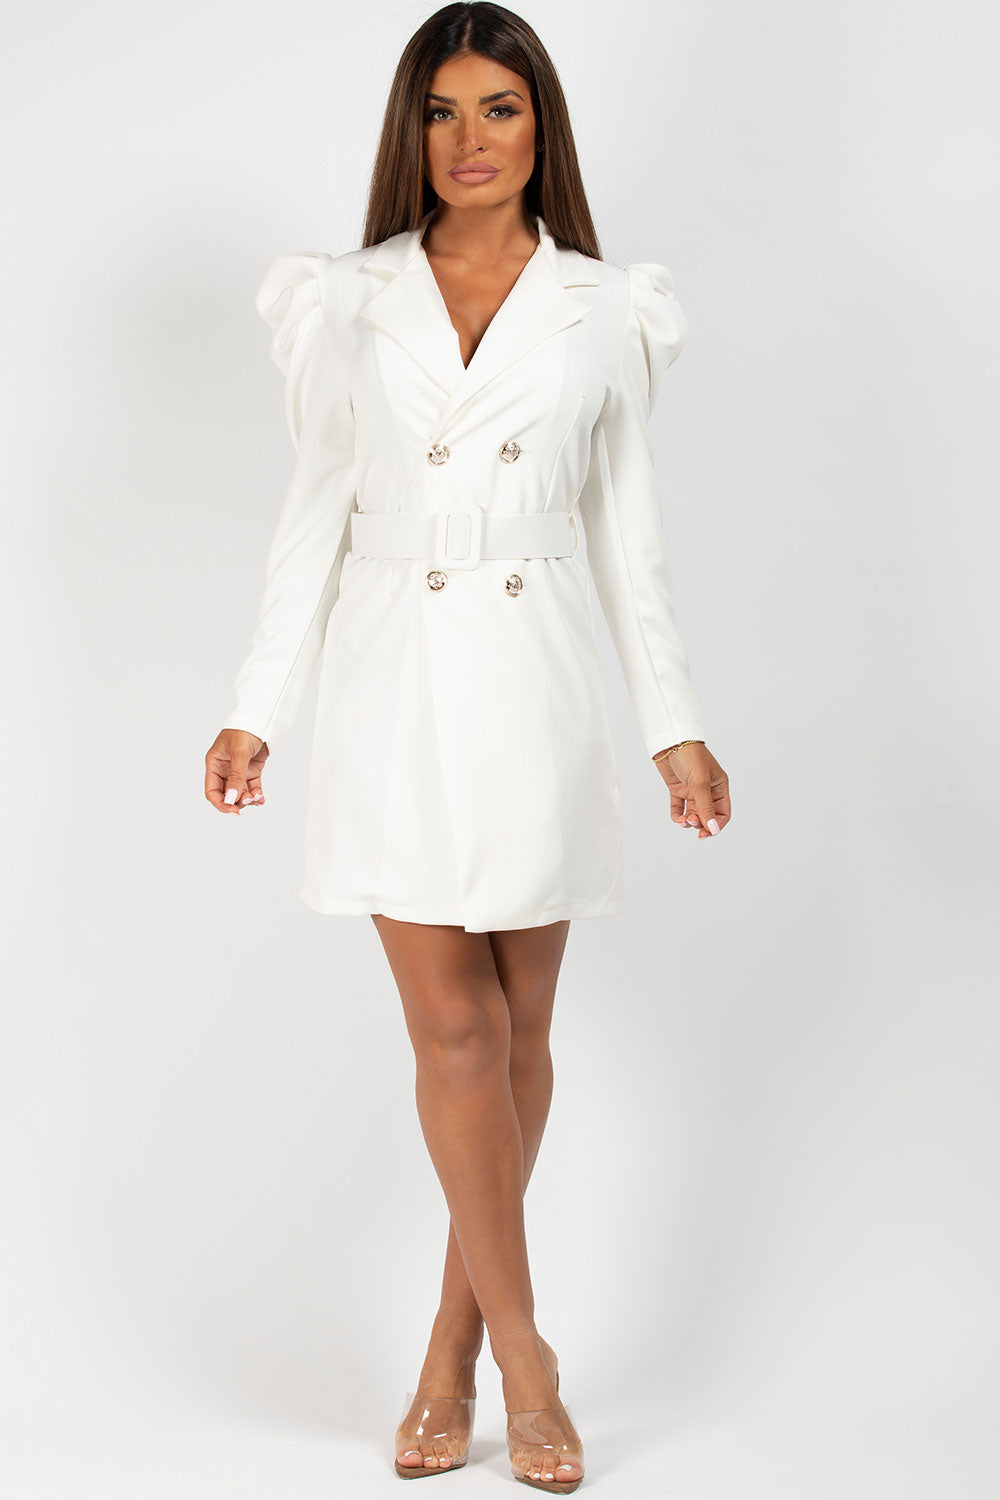 cream blazer dress